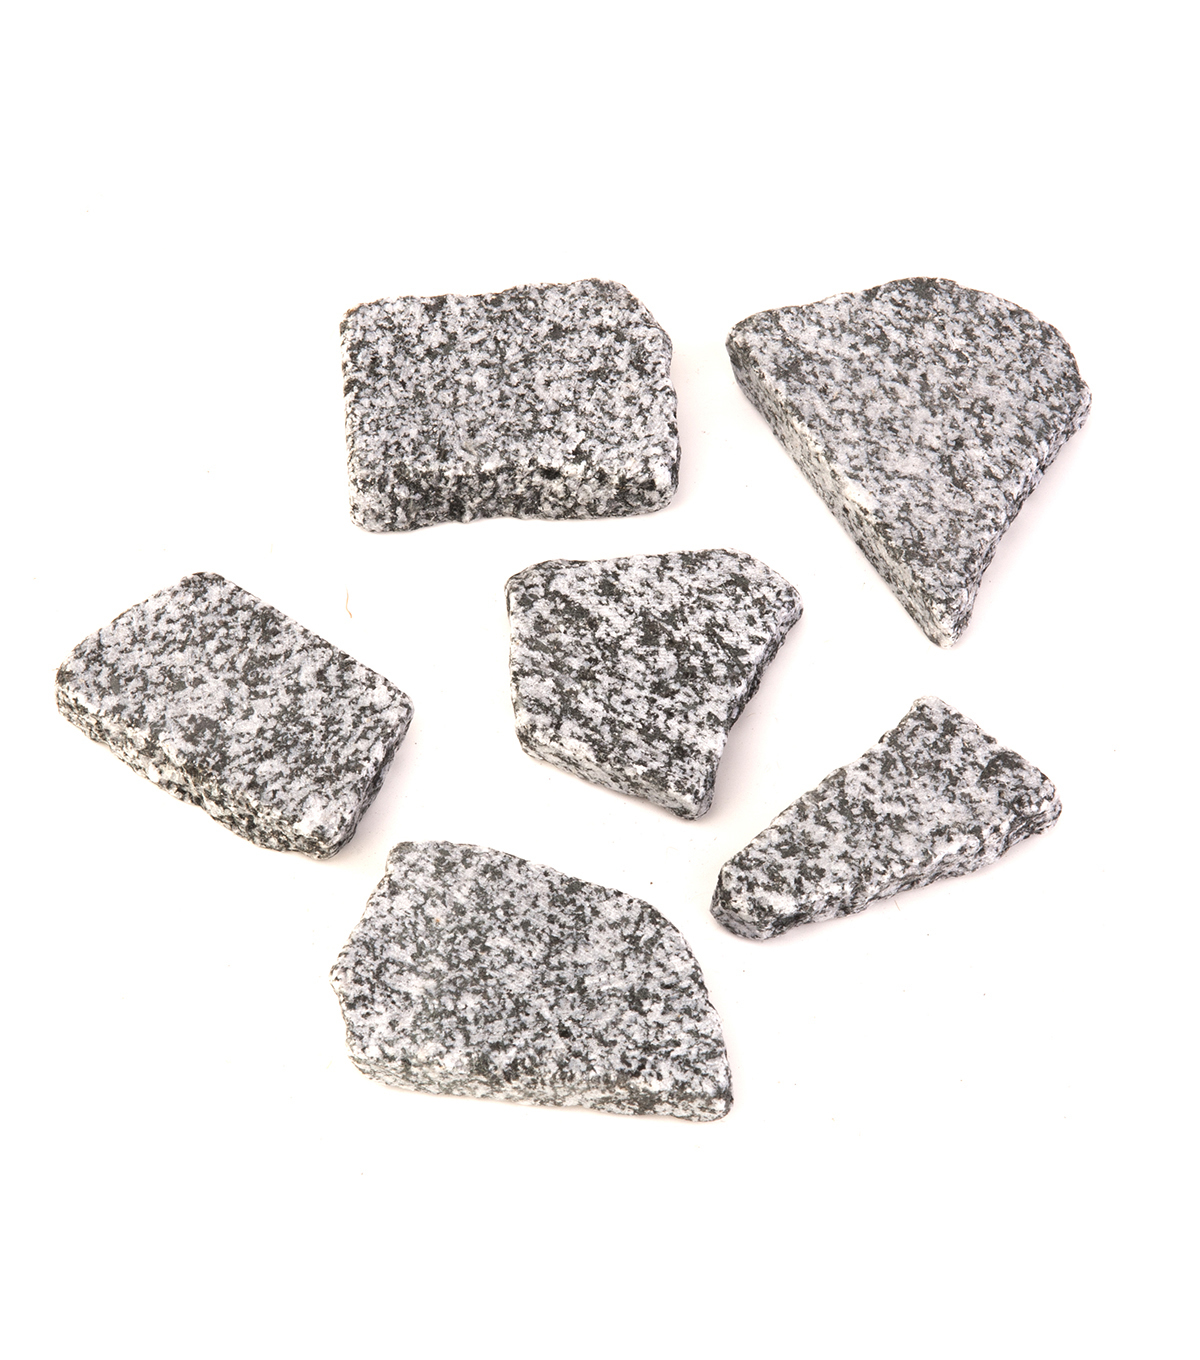 Panacea Products-Speckled Flat Rocks 2 lb.